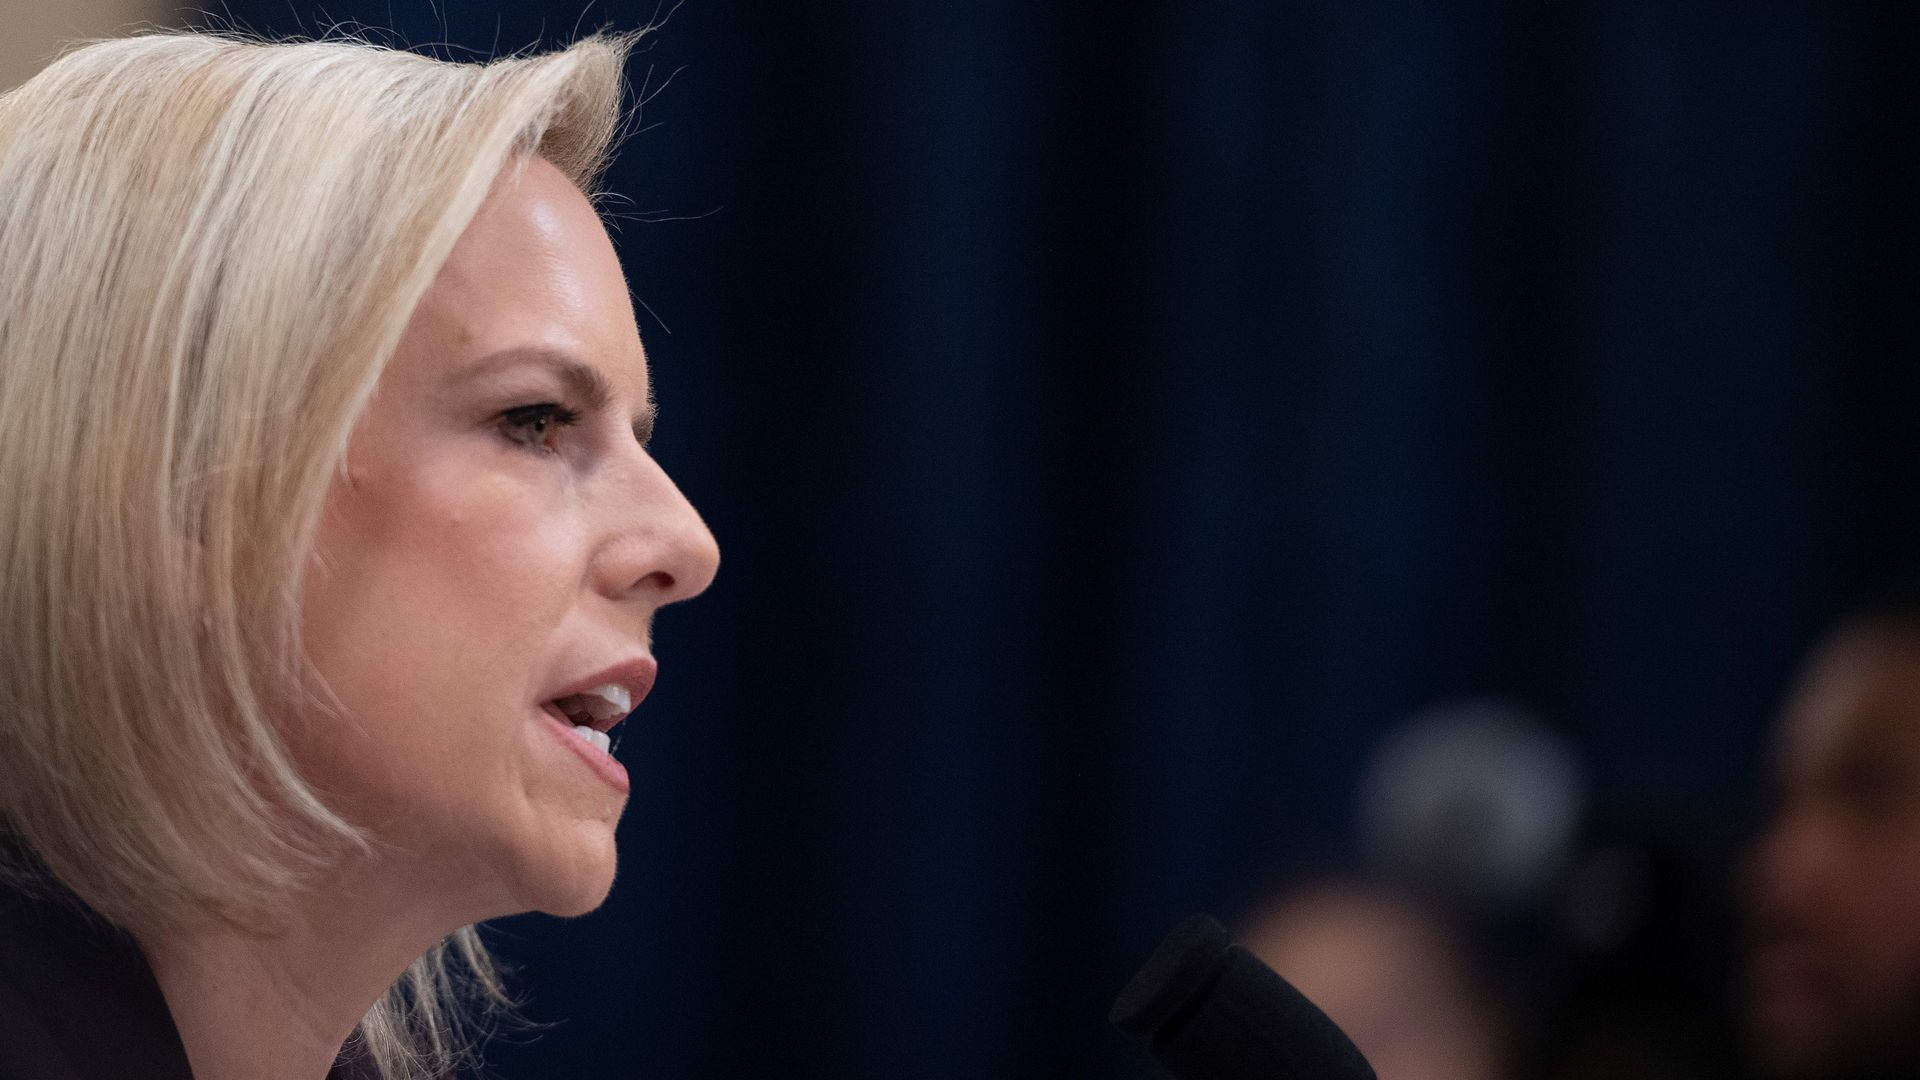 DHS Secretary Kirstjen Nielsen's profile as she speaks into a microphone with a serious face.